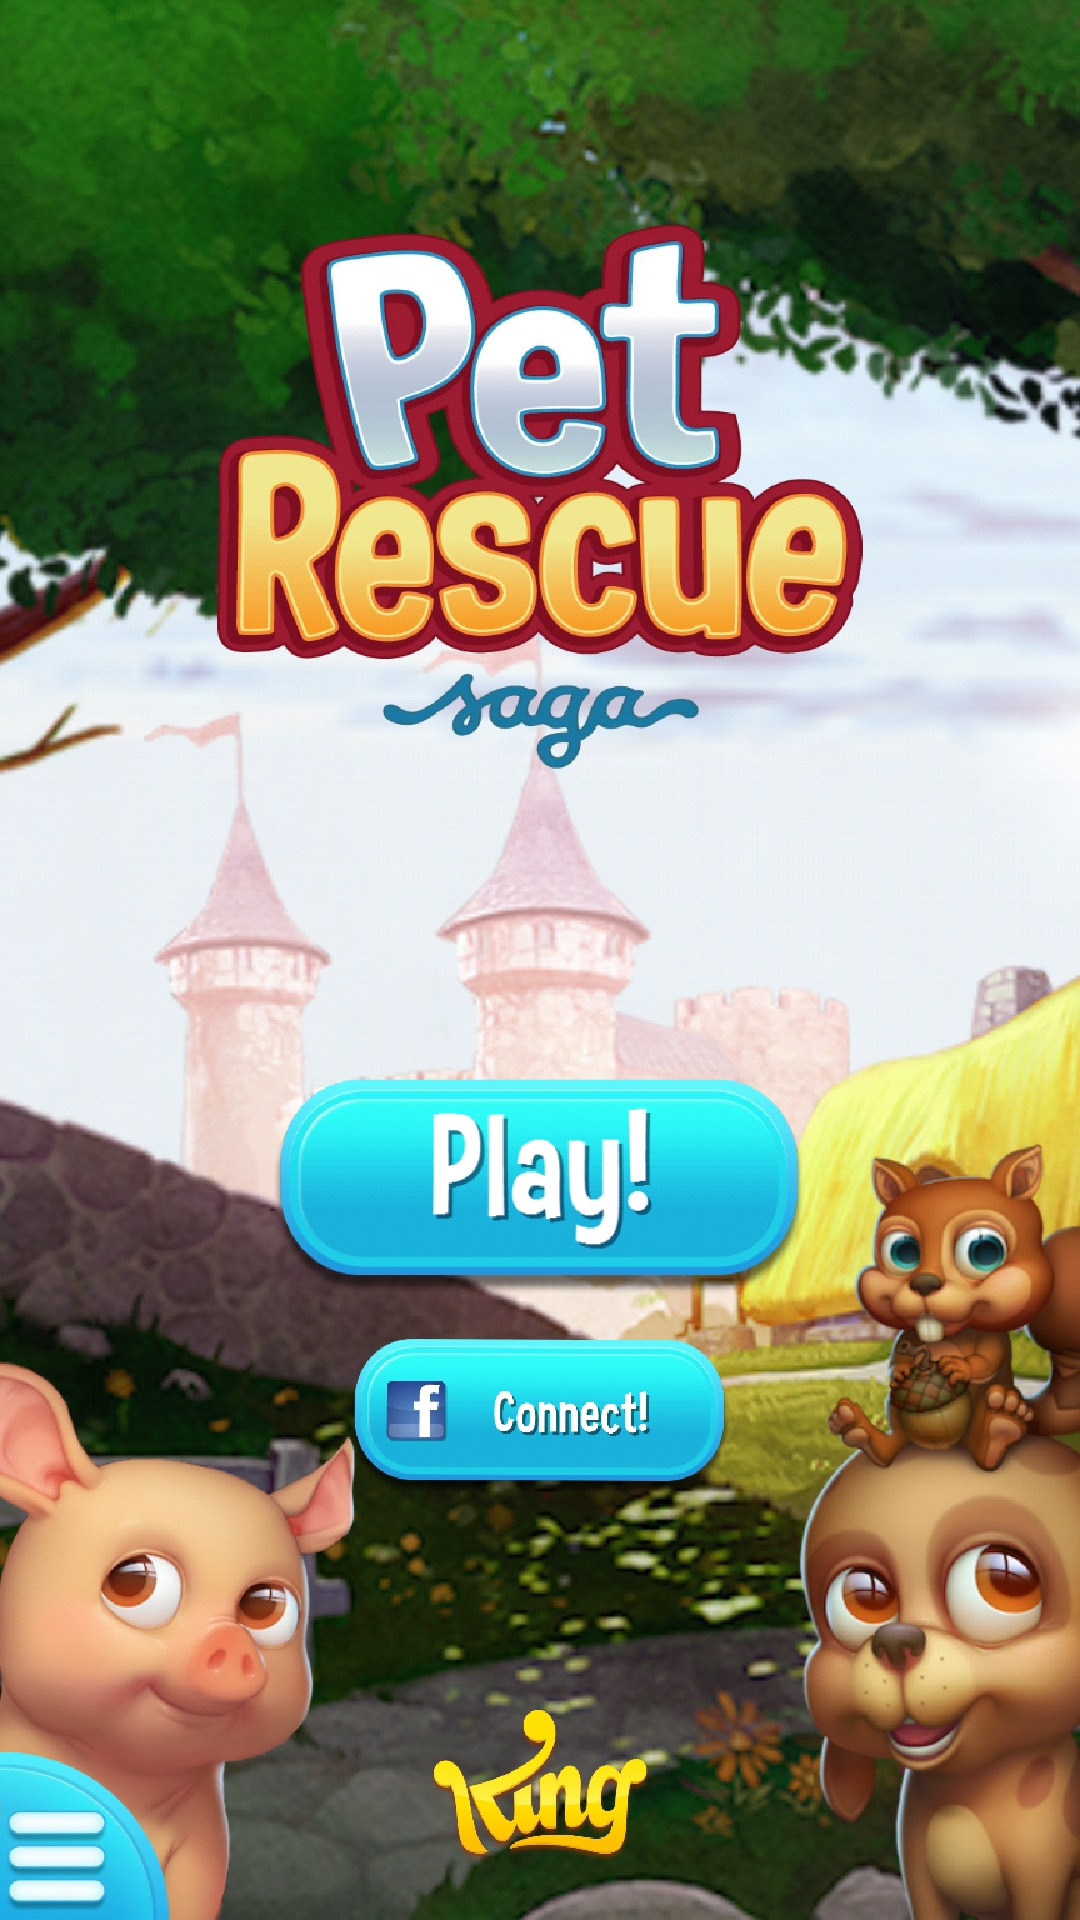 Bamse: Pet Rescue Saga: Level 002 (Android) 27,650 points on 2019-06-07 11:30:38